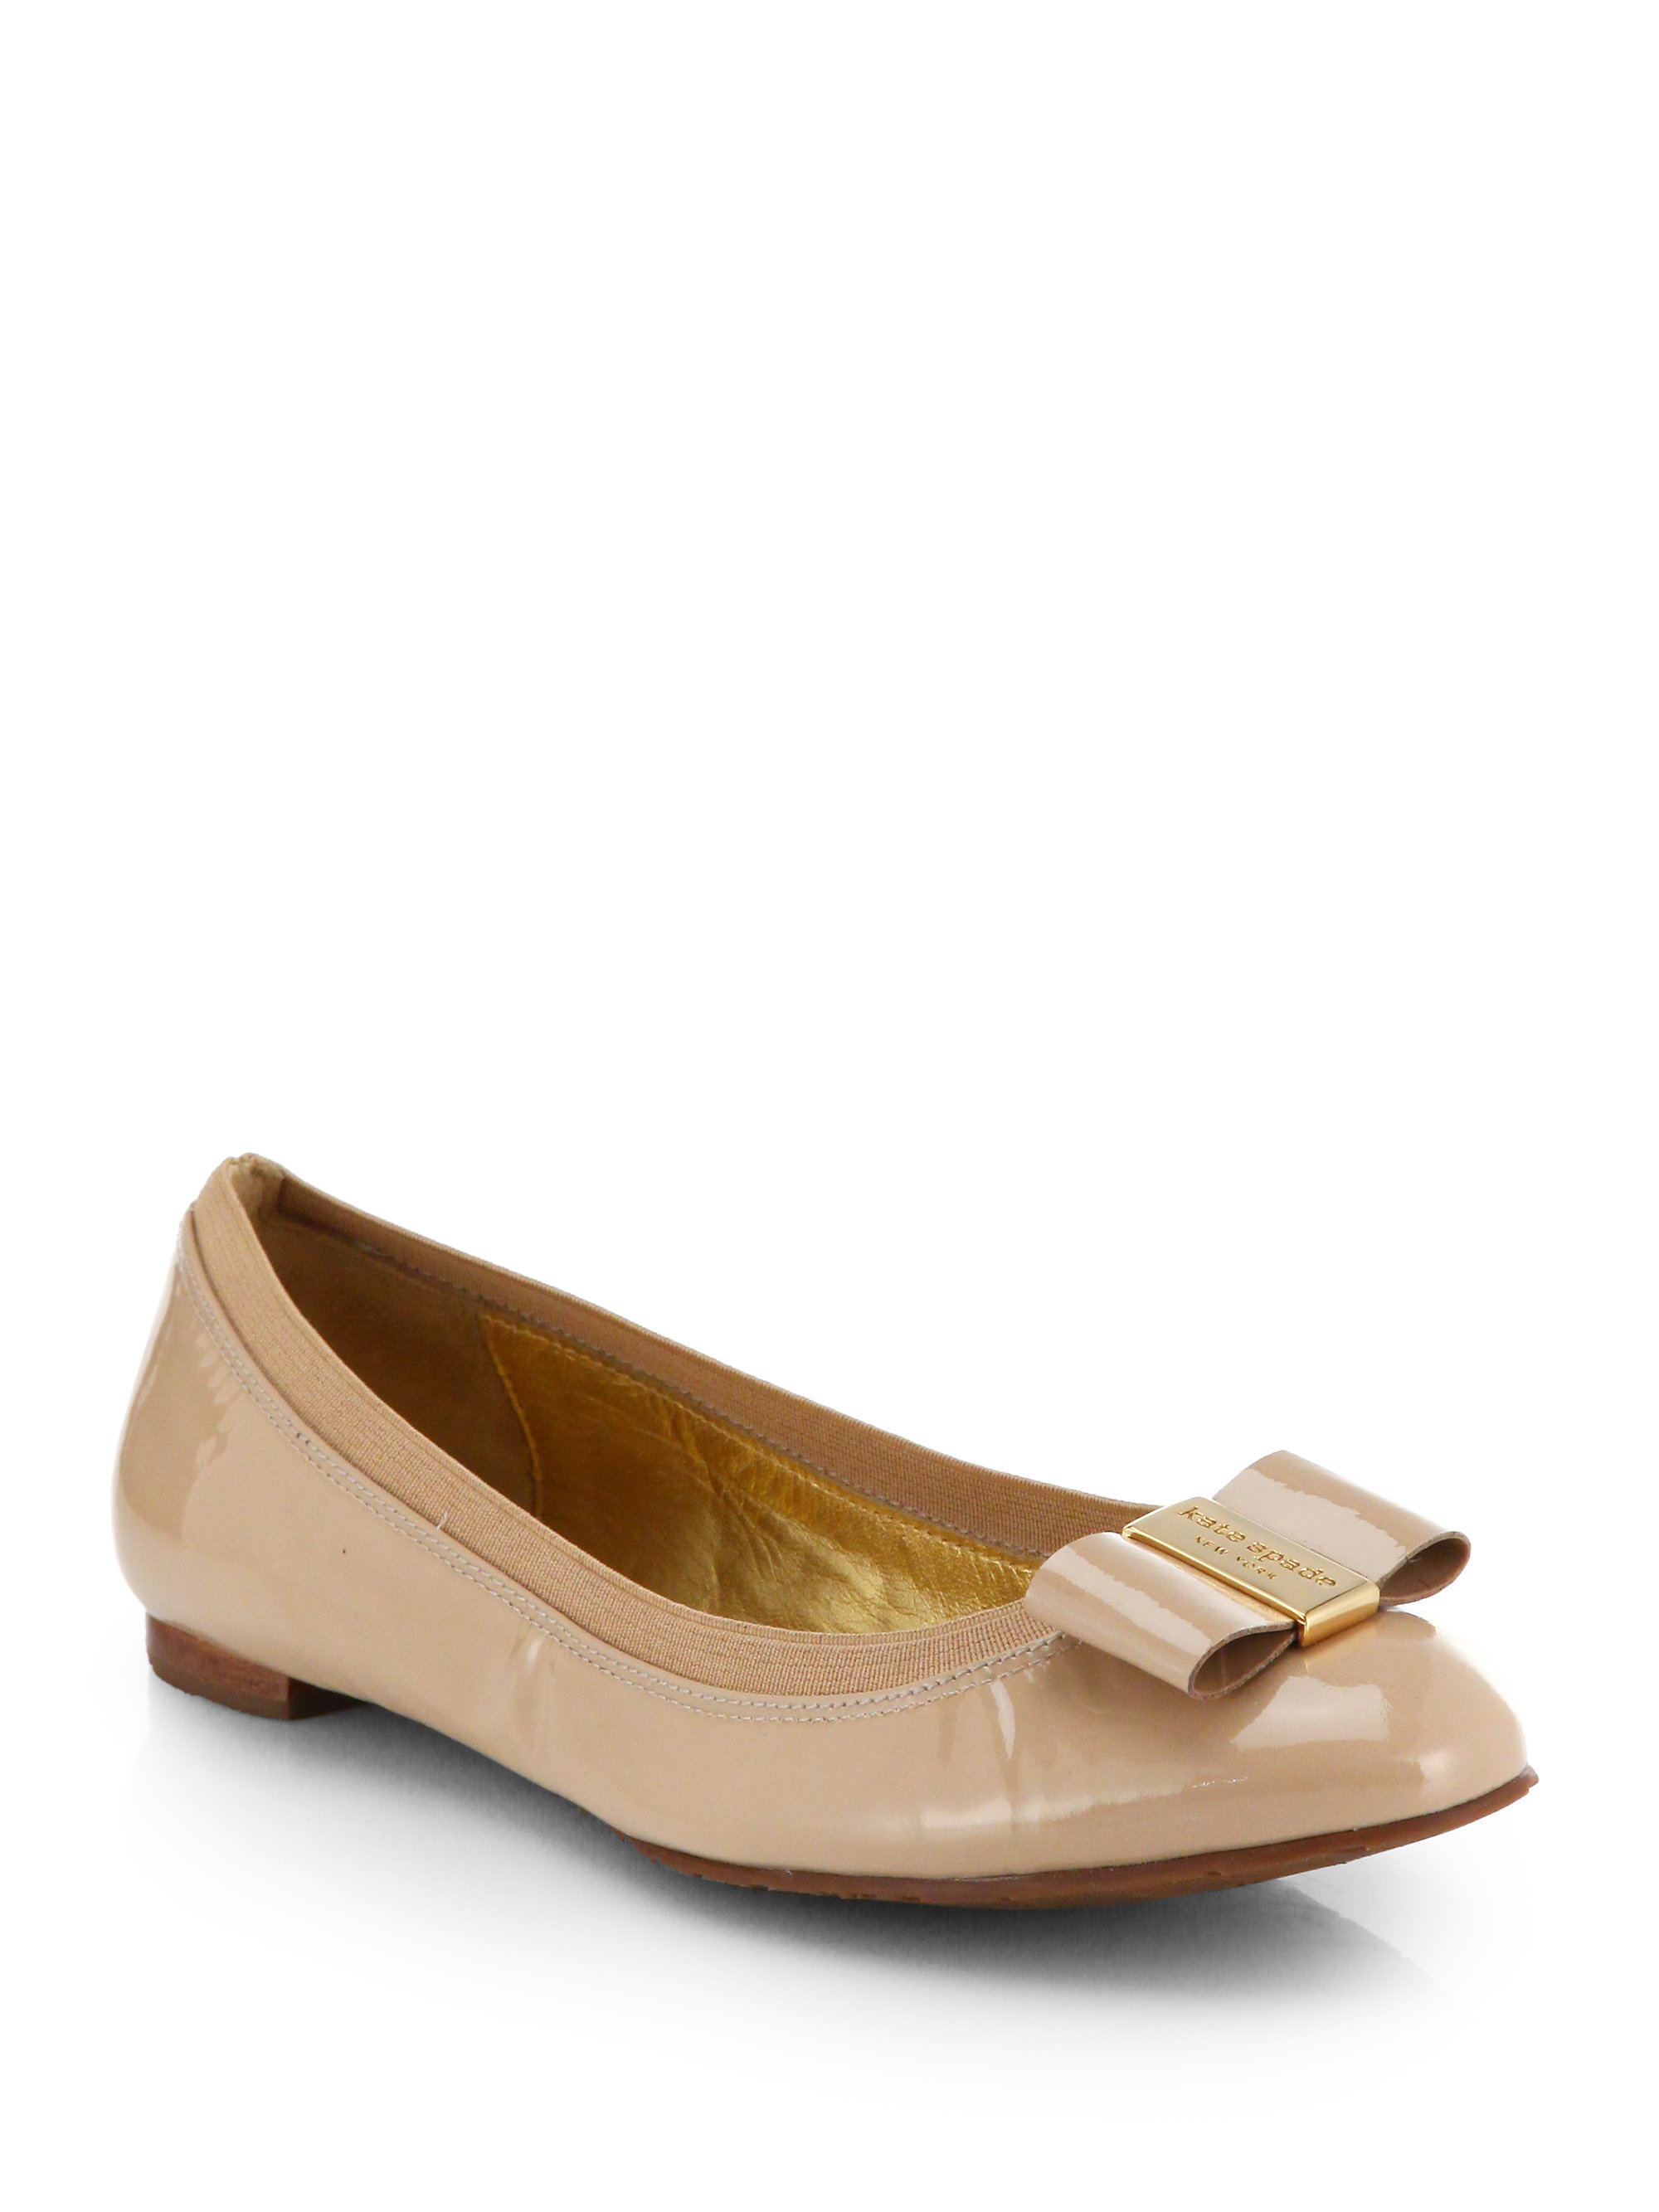 4f1e925ee2ce Lyst - Kate Spade Tock Patent Leather Bow Ballet Flats in Natural